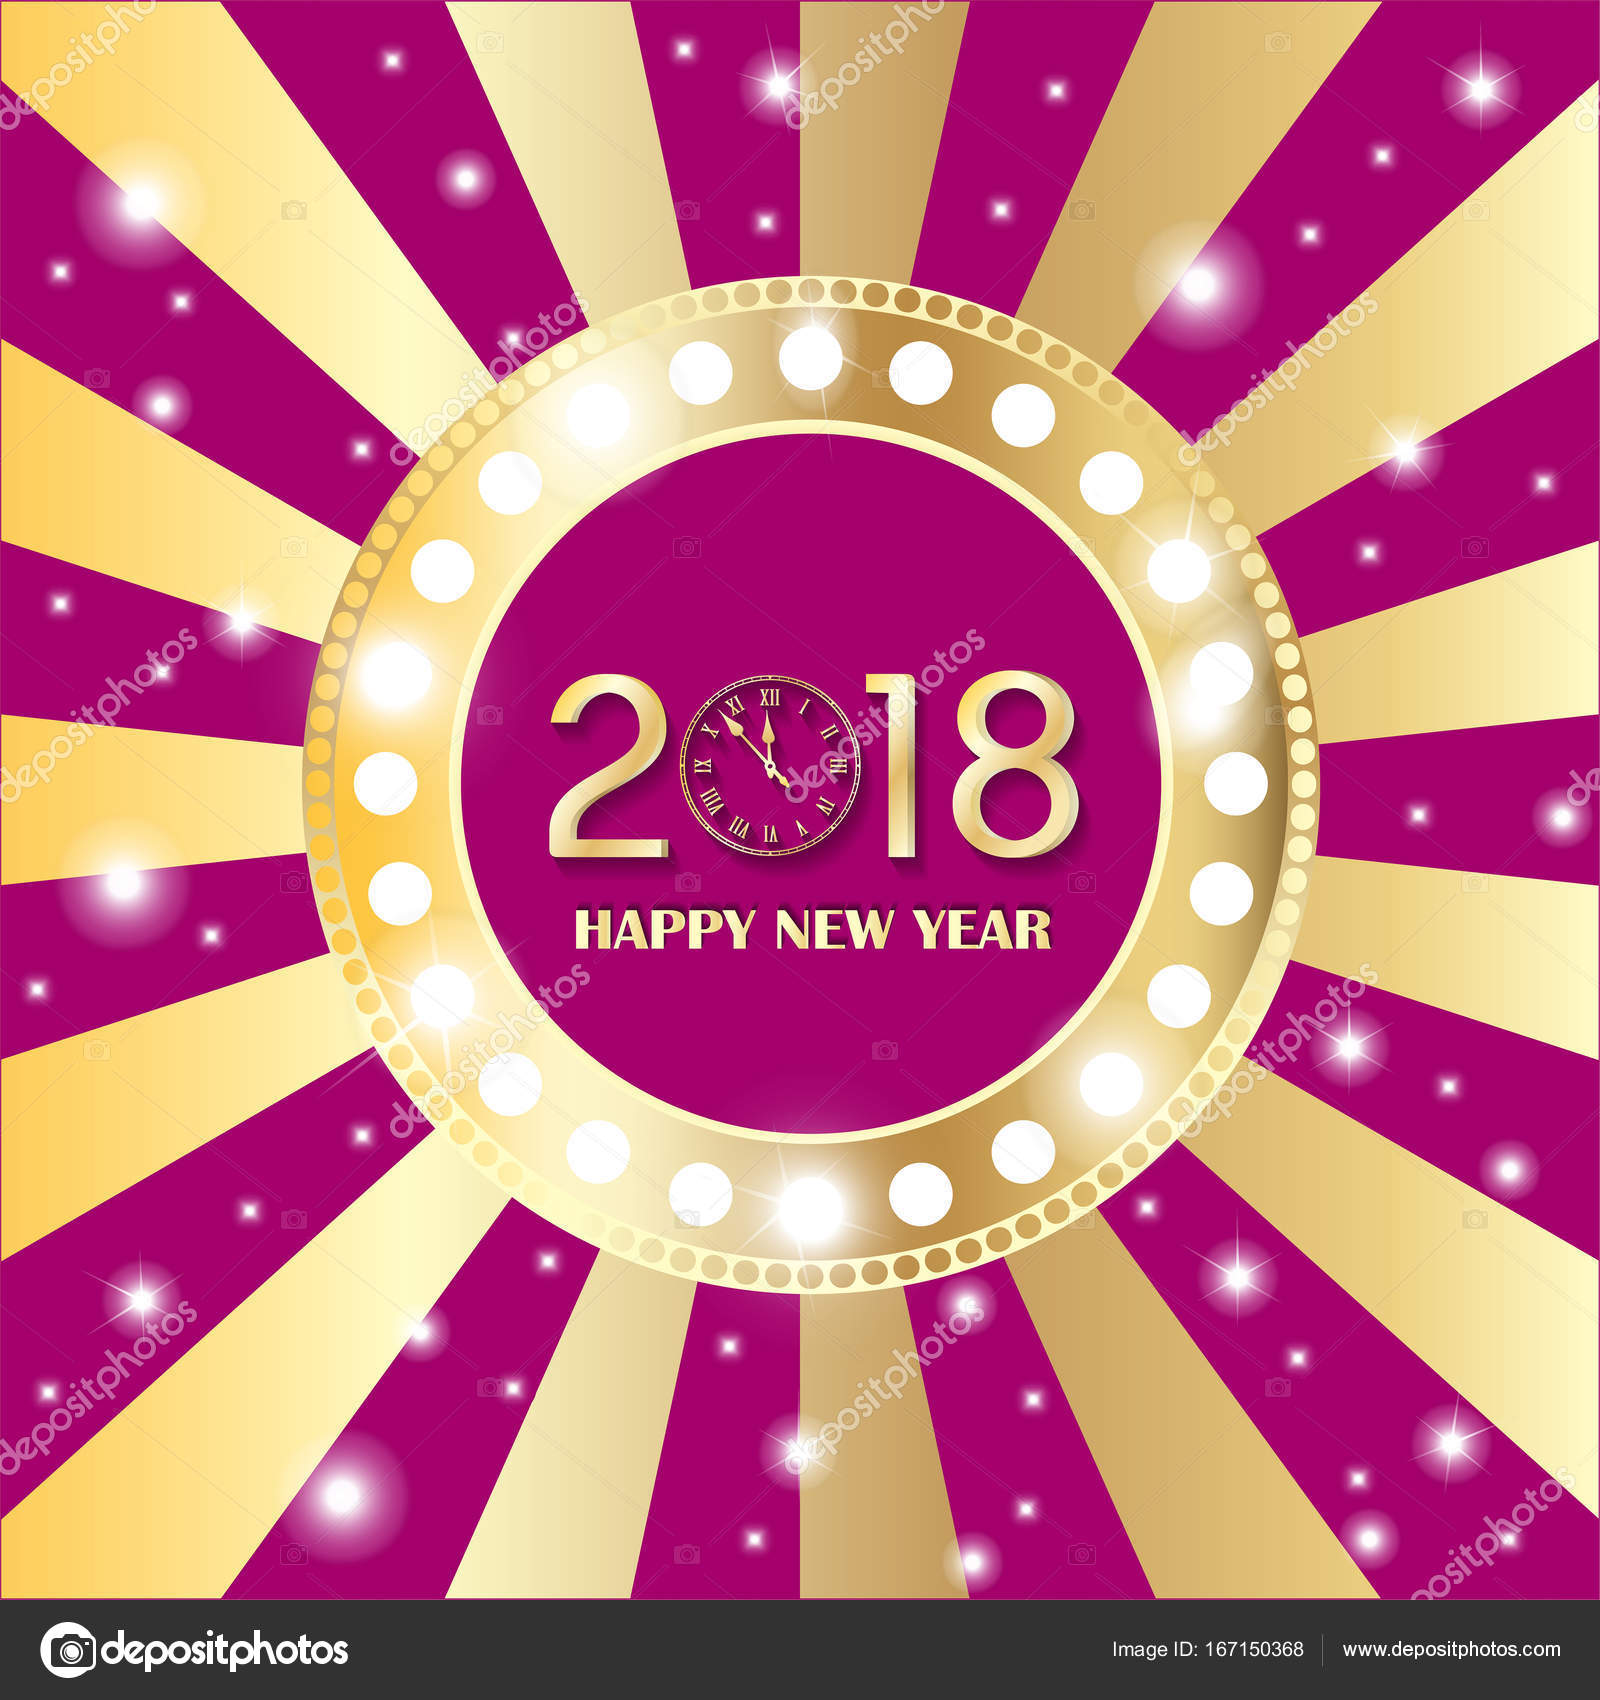 shining gold circle vintage banner with lights on retro pink and golden background new year